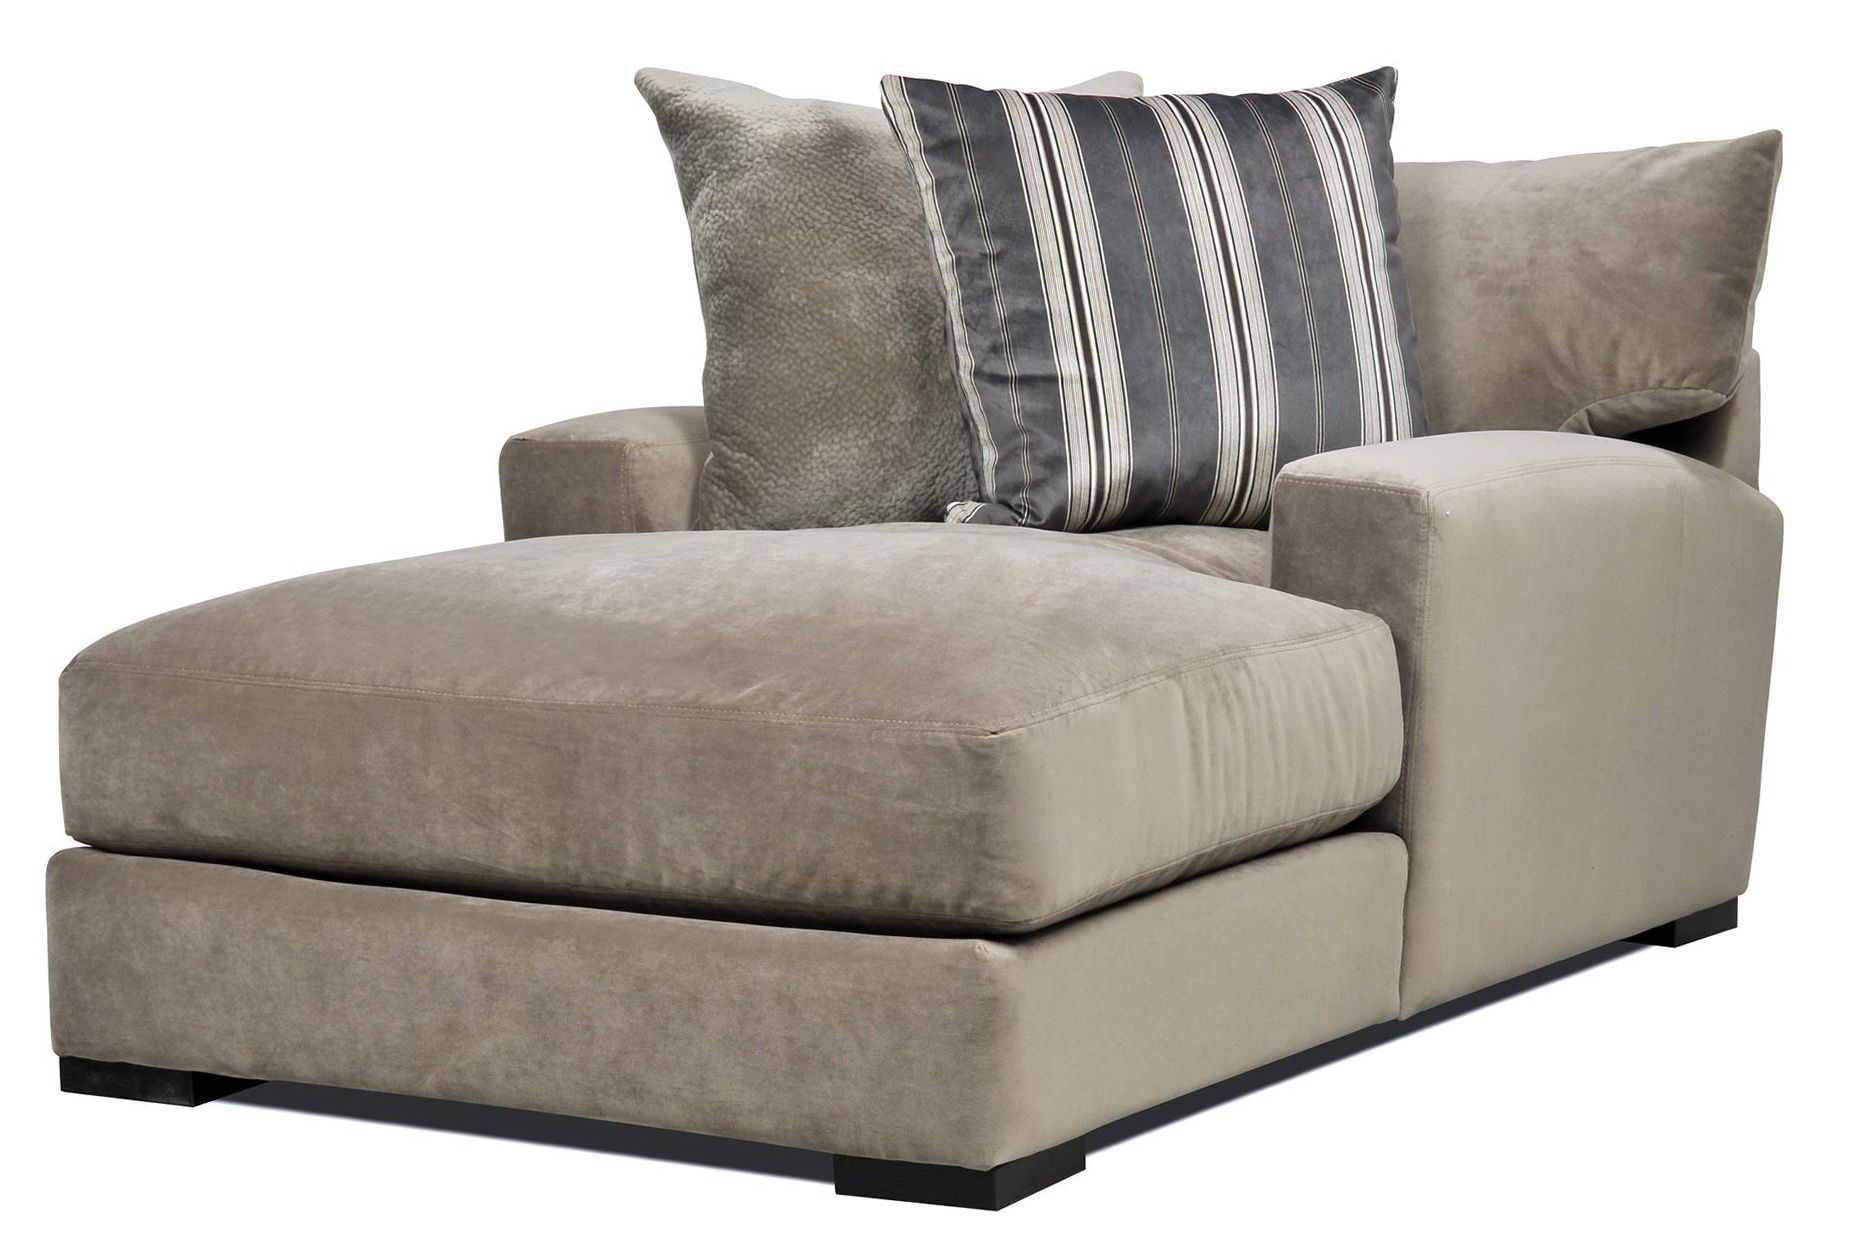 with dark in com dgy wide sofamania fb chaise linen joanne grey stg products lounge sectional